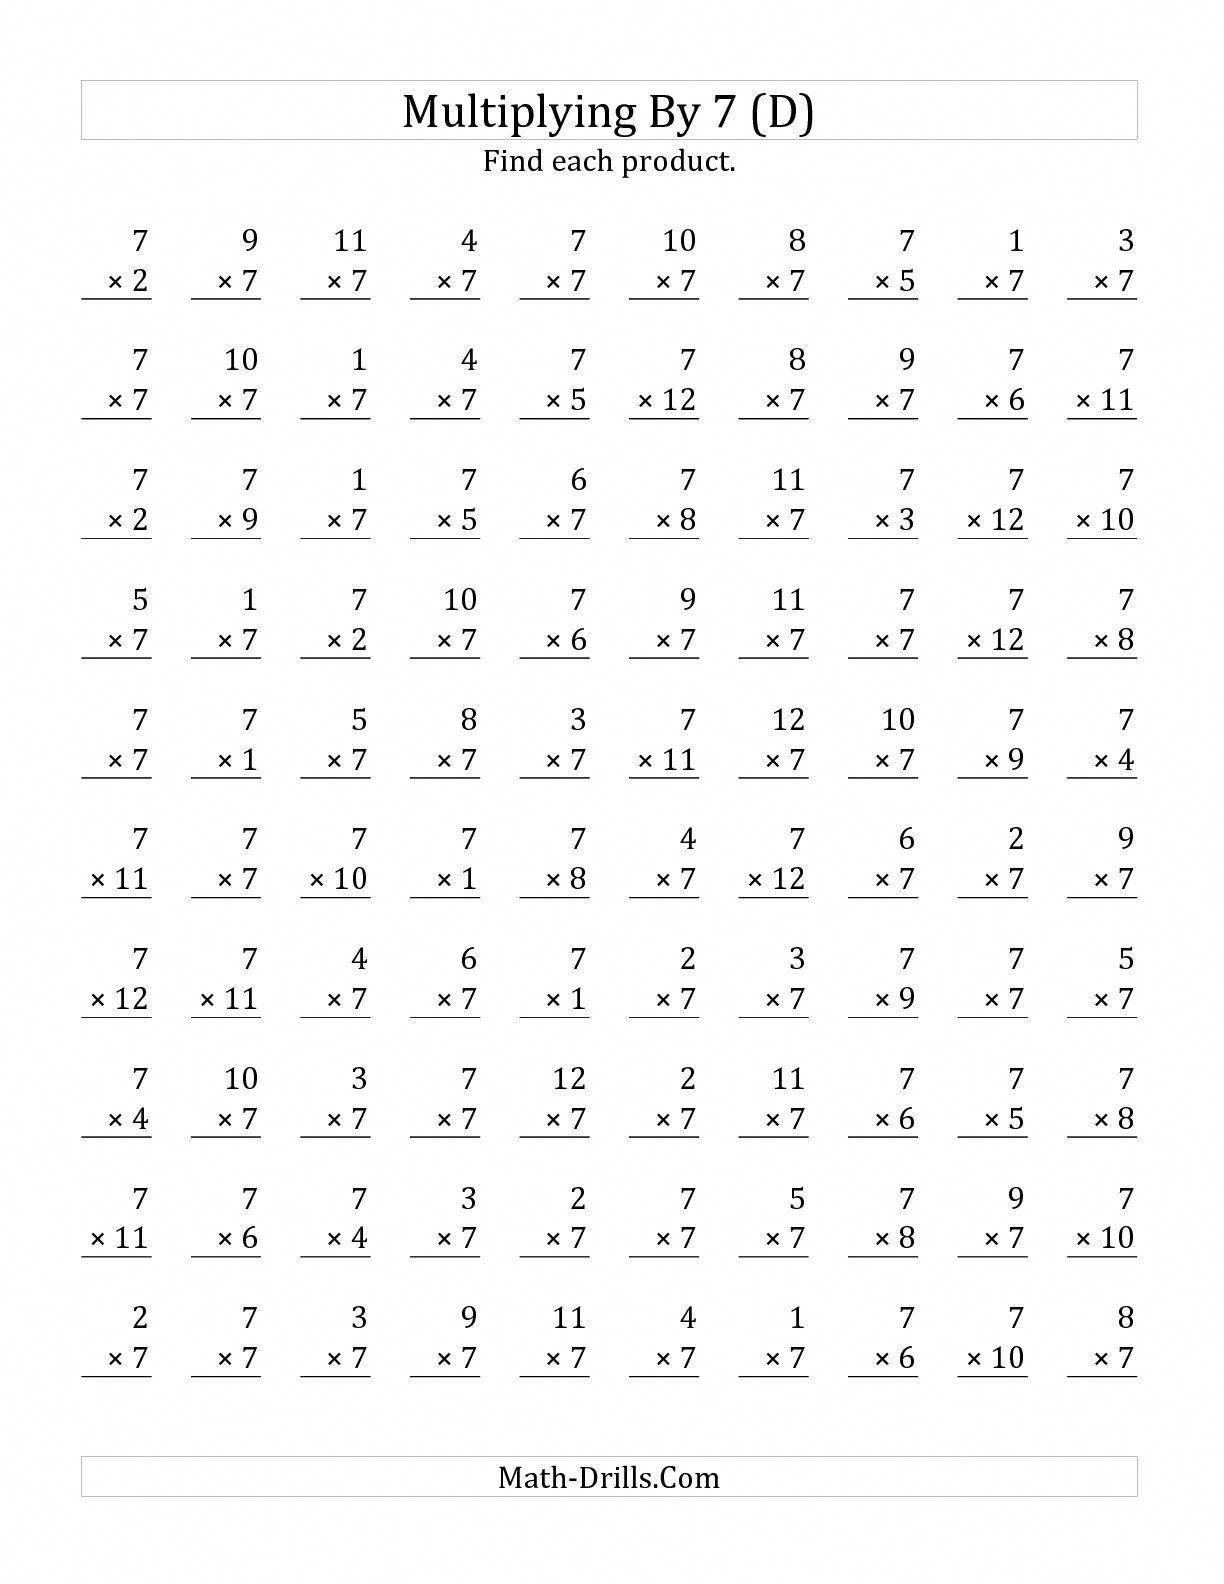 The Multiplying 1 To 12 By 7 D Math Worksheet From The Multiplication Worksheet Page A Fichas De Exercicios De Matematica Exercicios De Matematica Matematica